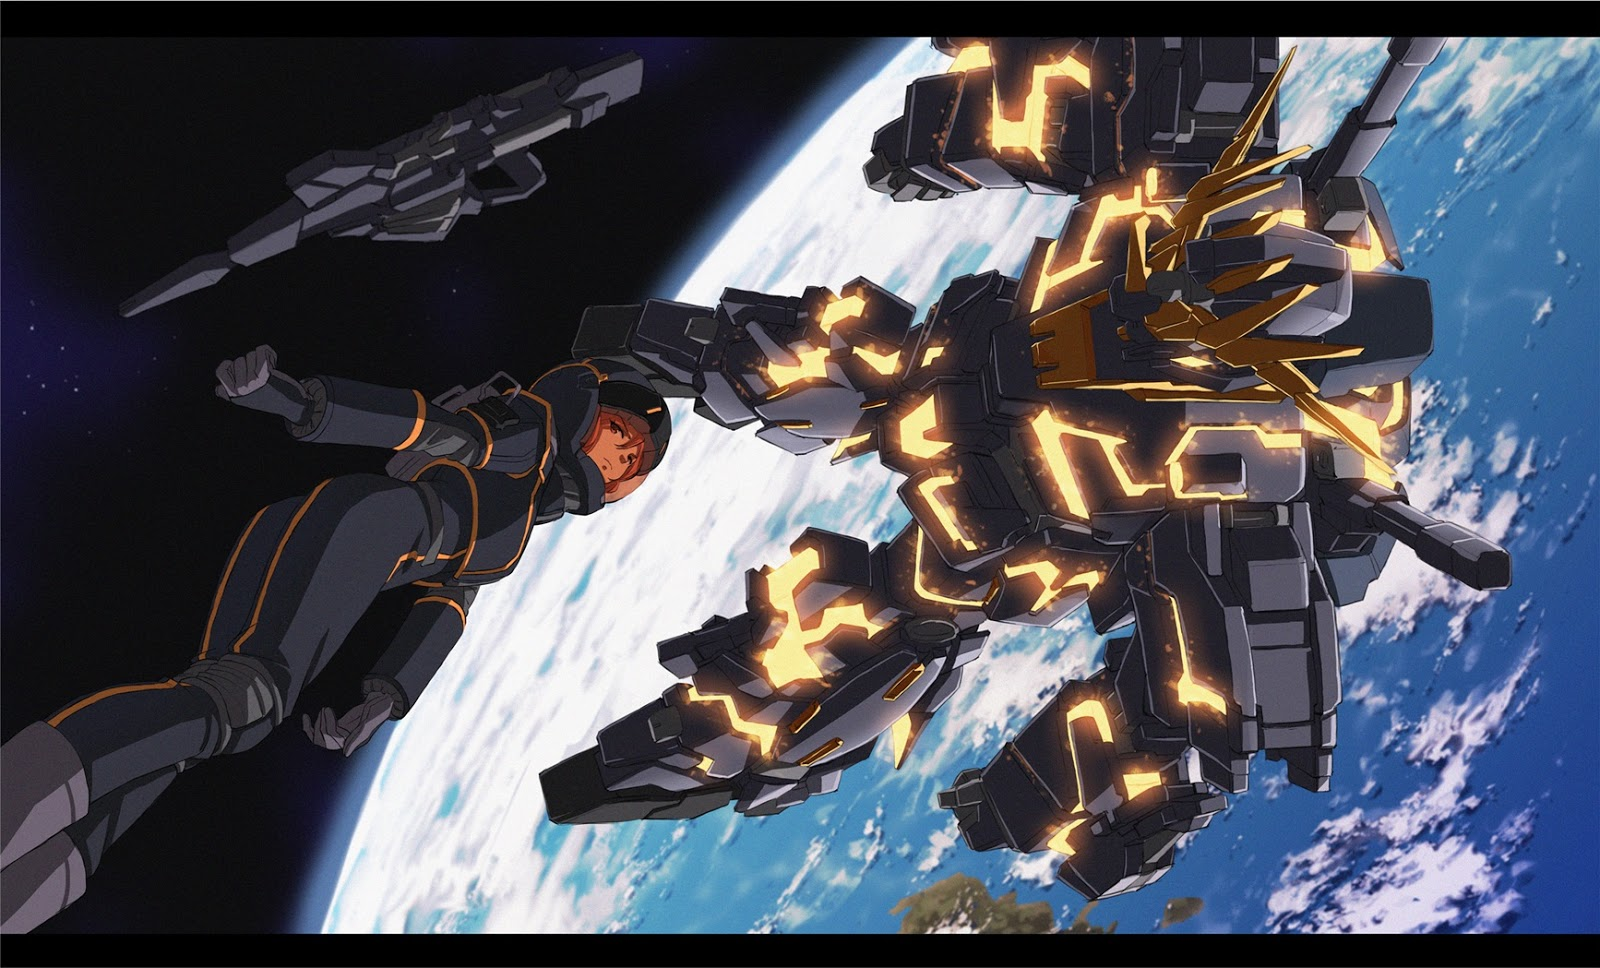 RX-0 Gundam Unicorn 02 Banshee and Marida Cruz Wallpaper ... Gundam Banshee Wallpaper